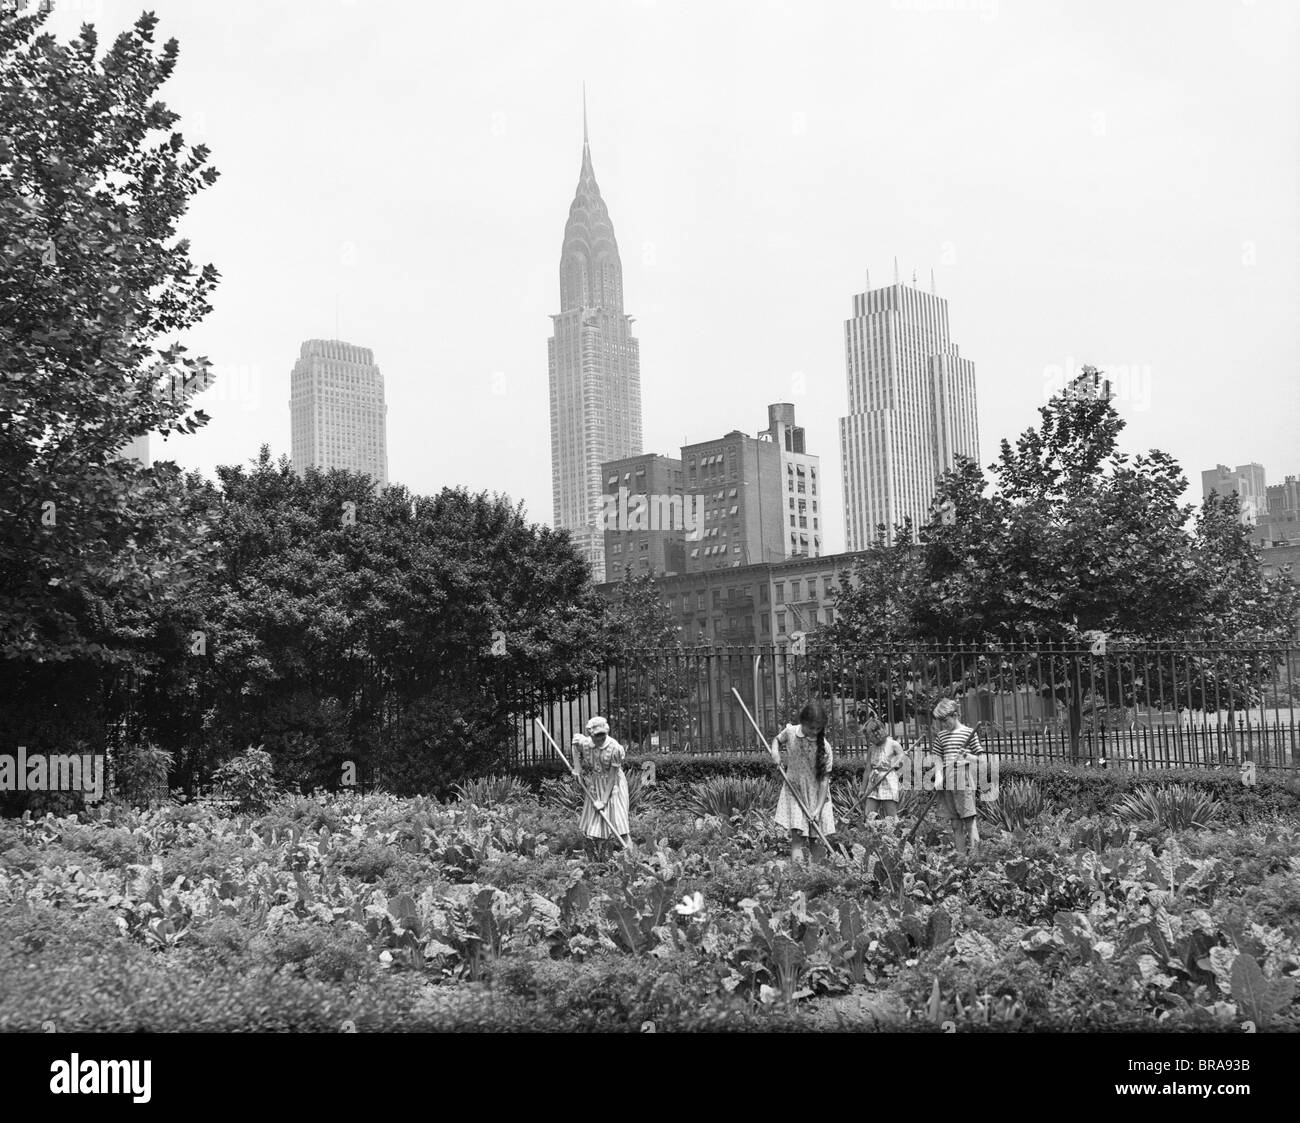 1940s 1943 CHILDREN WORKING IN VICTORY GARDENS IN ST. GABRIEL'S PARK NEW YORK CITY CHRYSLER BUILDING VISIBLE - Stock Image